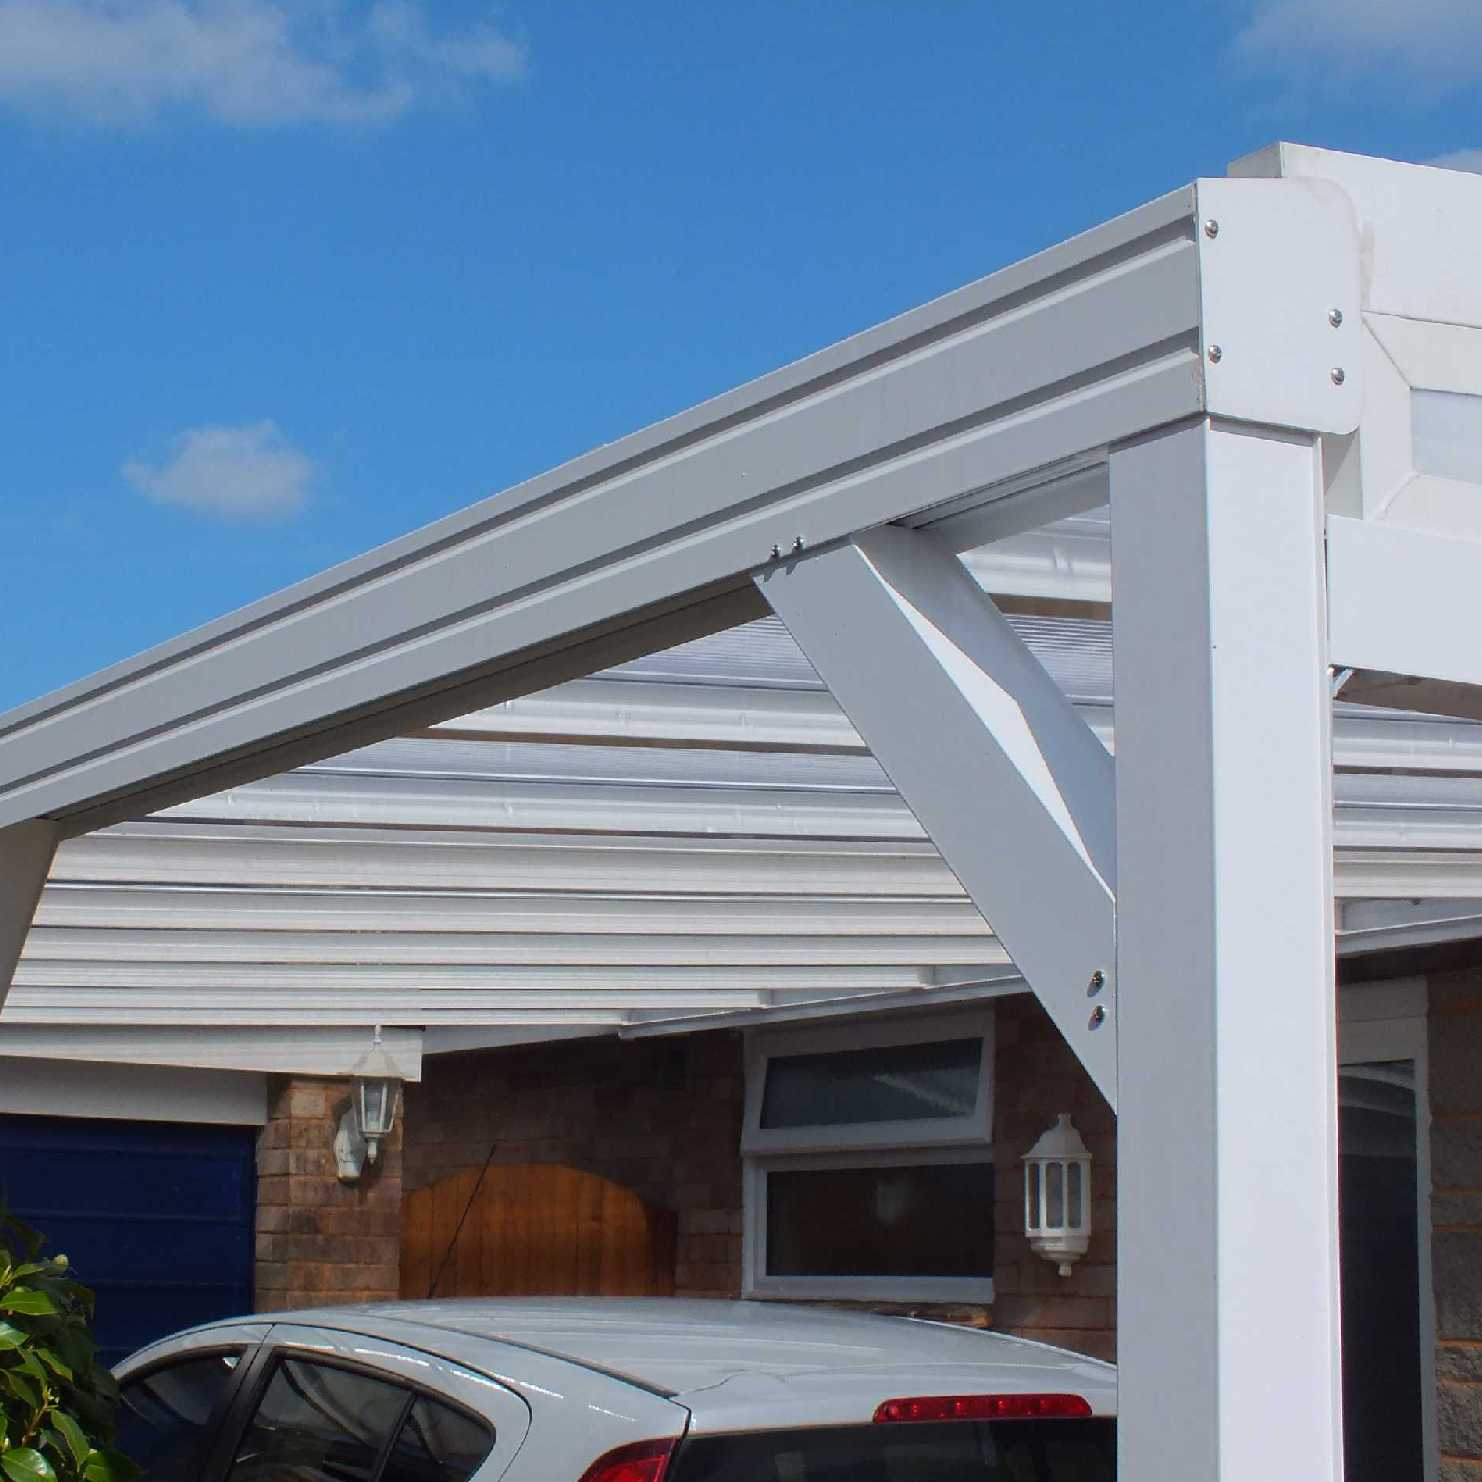 Great deals on Omega Smart White Lean-To Canopy with 16mm Polycarbonate Glazing - 6.0m (W) x 4.0m (P), (3) Supporting Posts